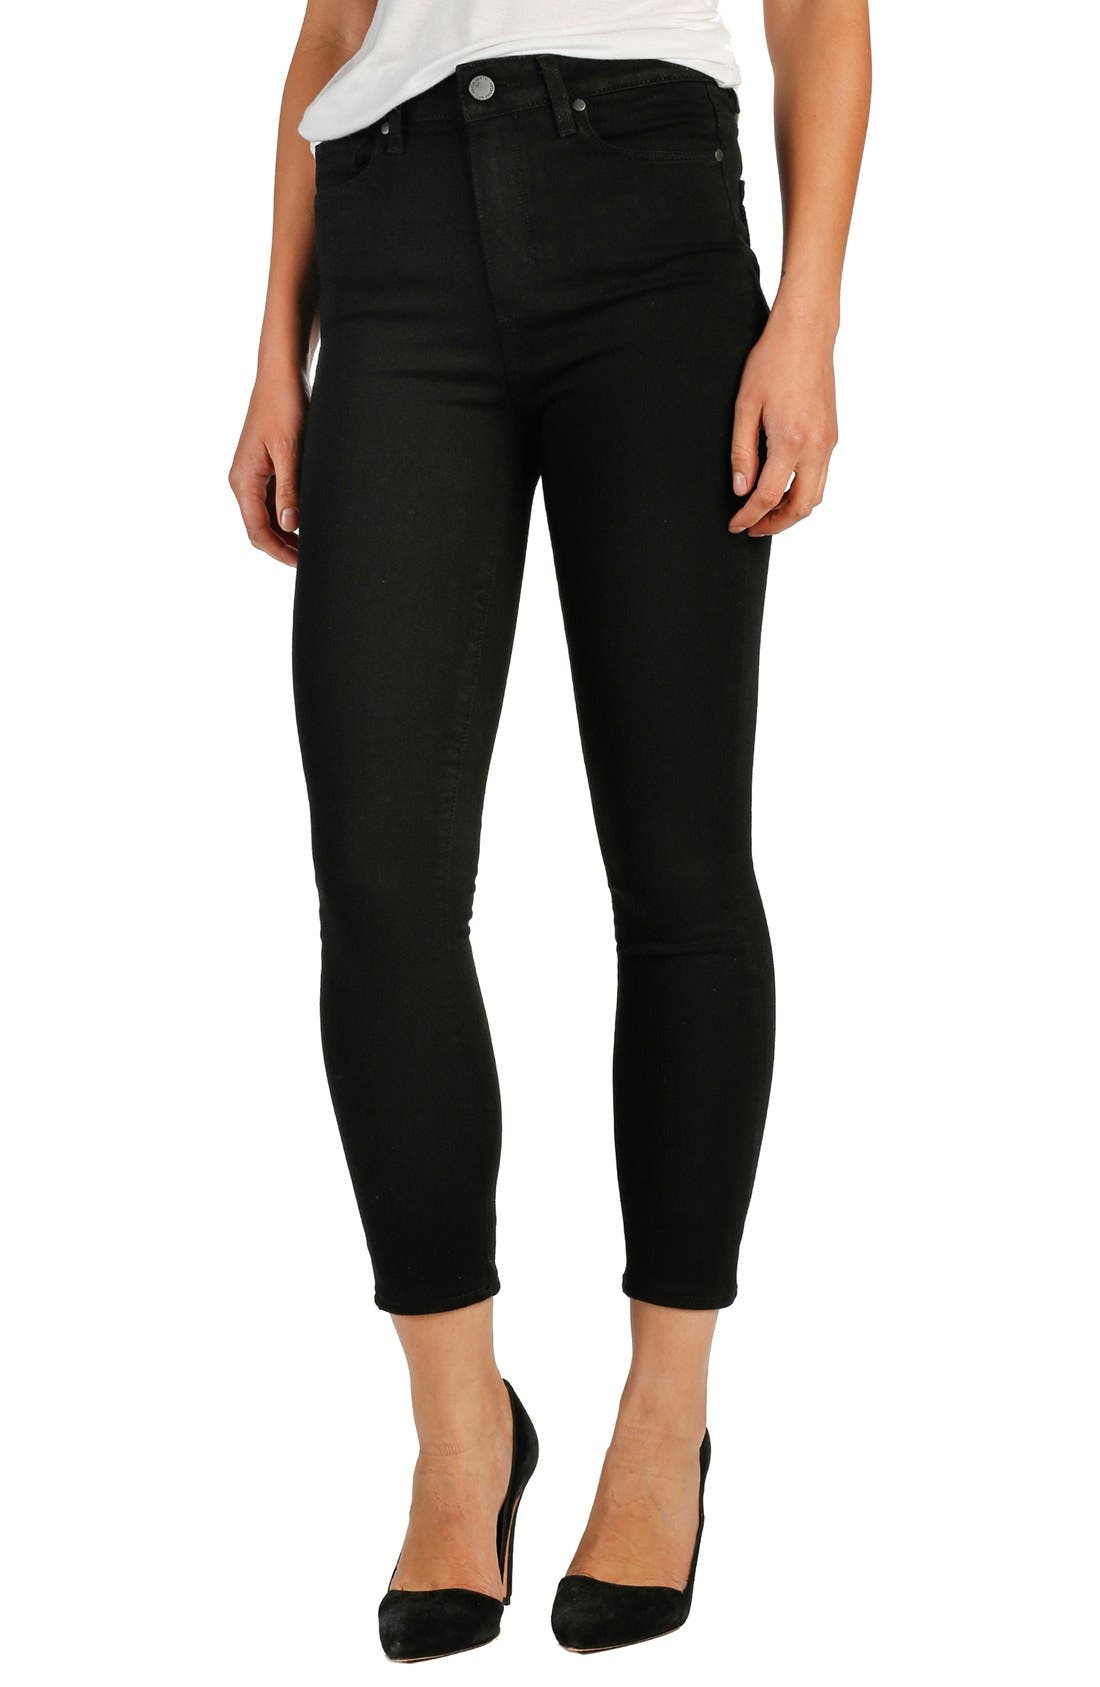 Alternate Image 1 Selected - PAIGE Transcend - Margot High Waist Crop Ultra Skinny Jeans (Black Shadow)